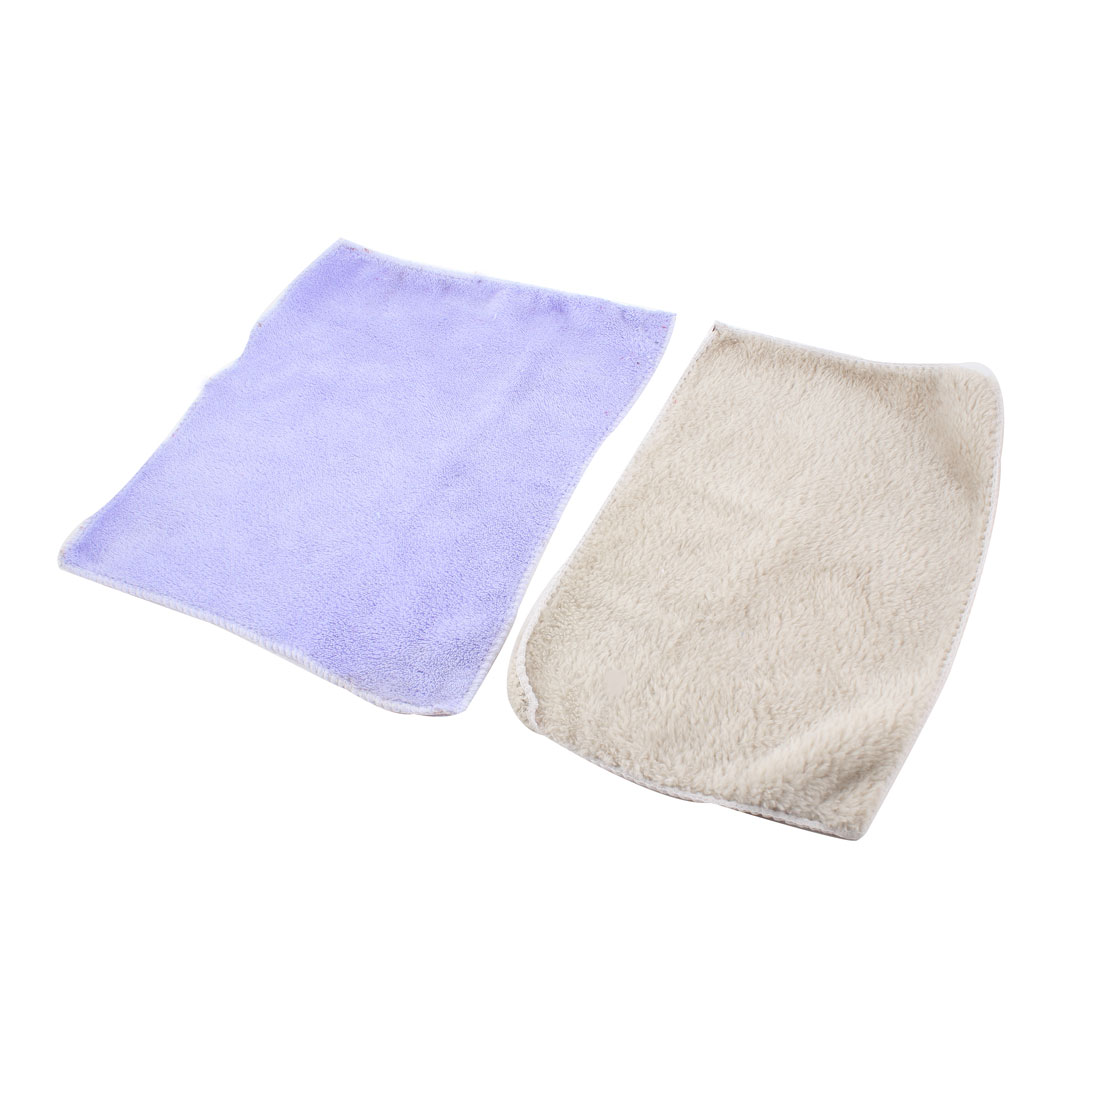 2Pcs Light Purple Beige Cleaning Towel Wash Towel Cloth for Car Door Glass